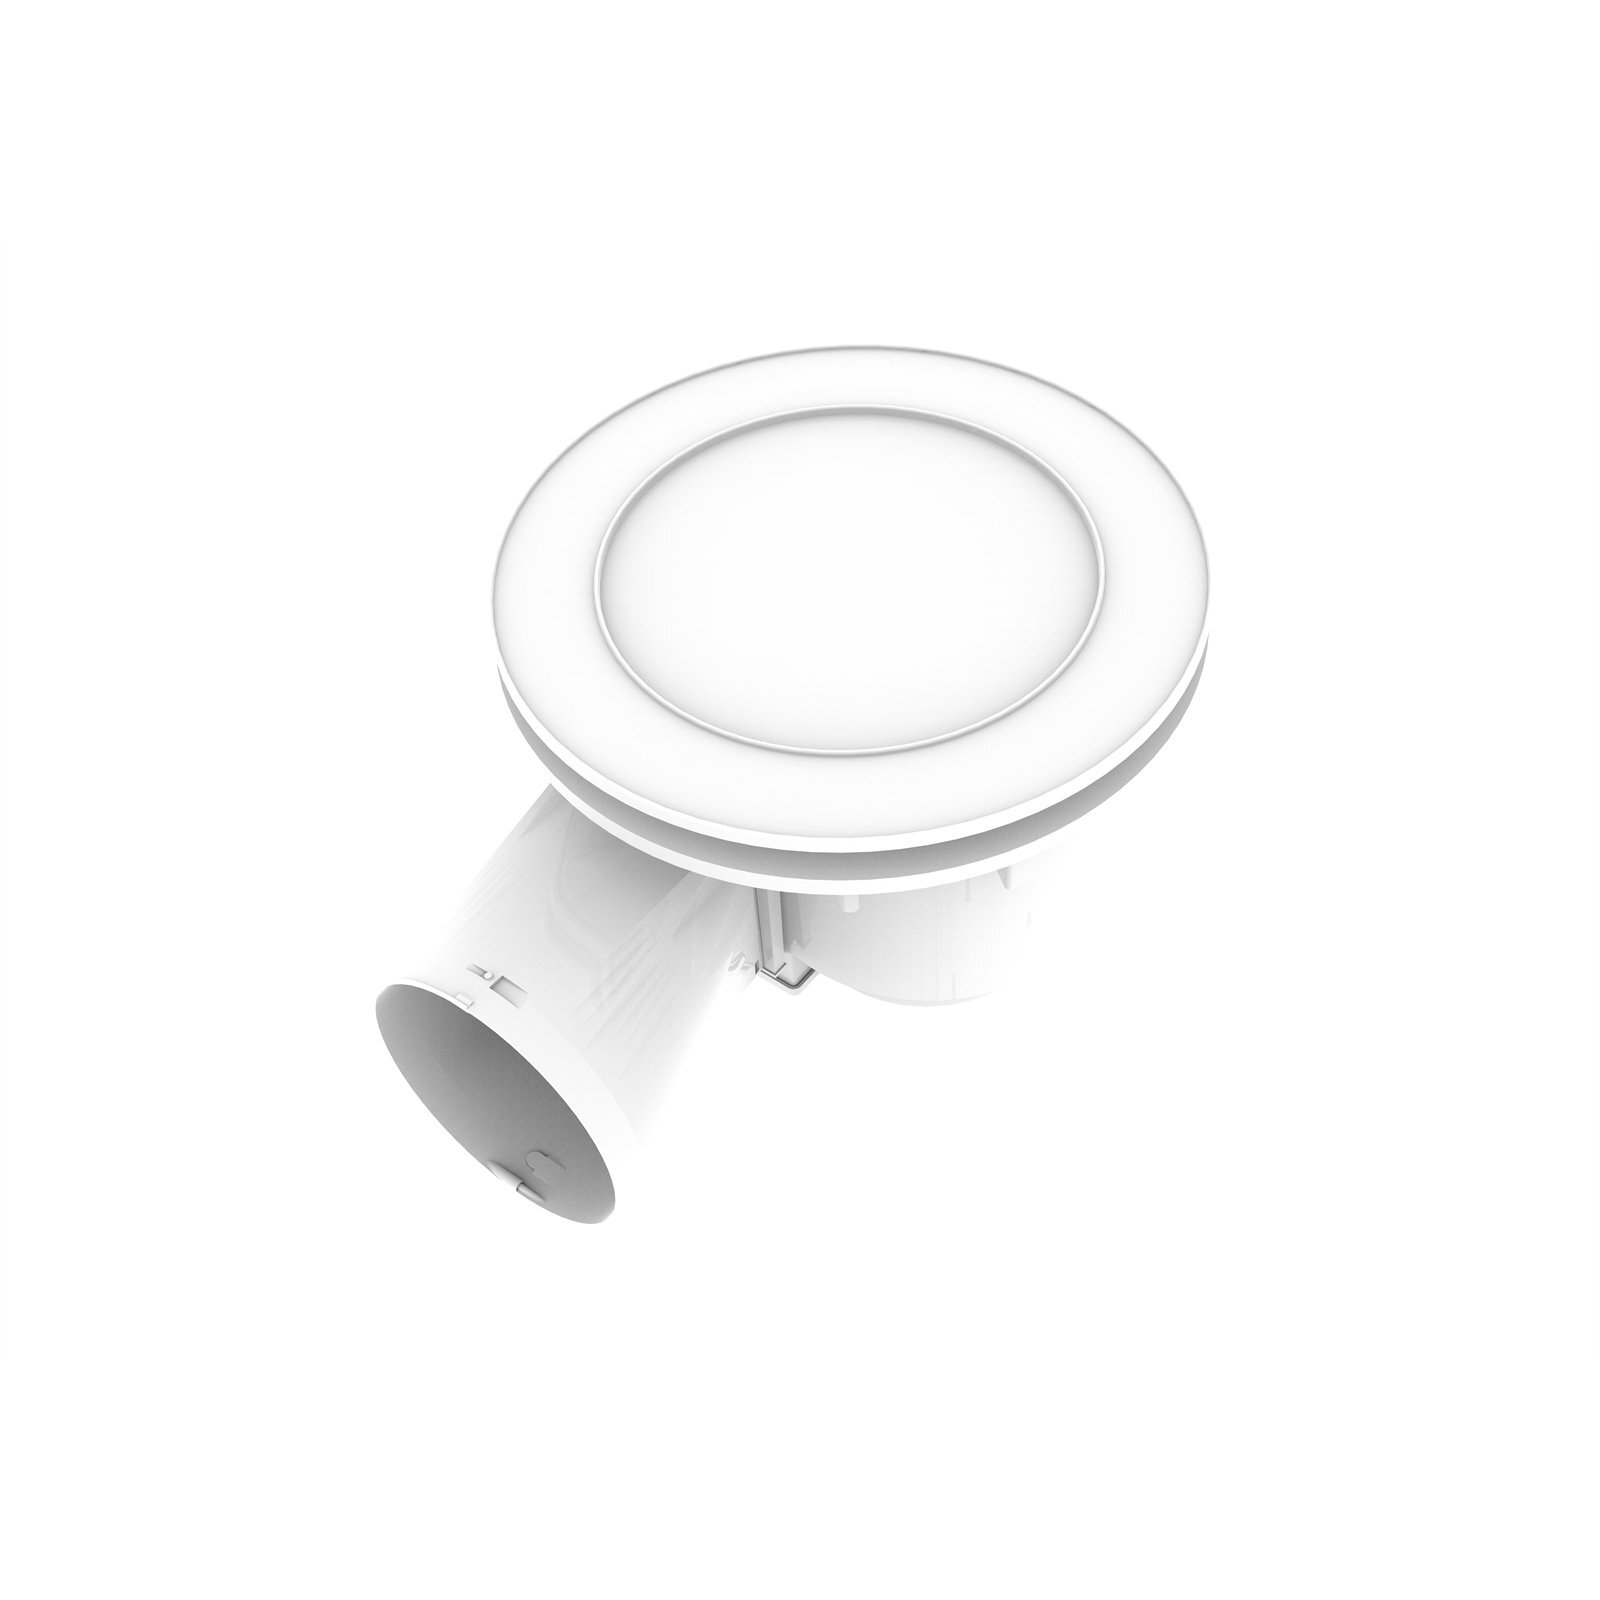 IXL 200mm Ducted Ventflo Ceiling Exhaust Fan And Light